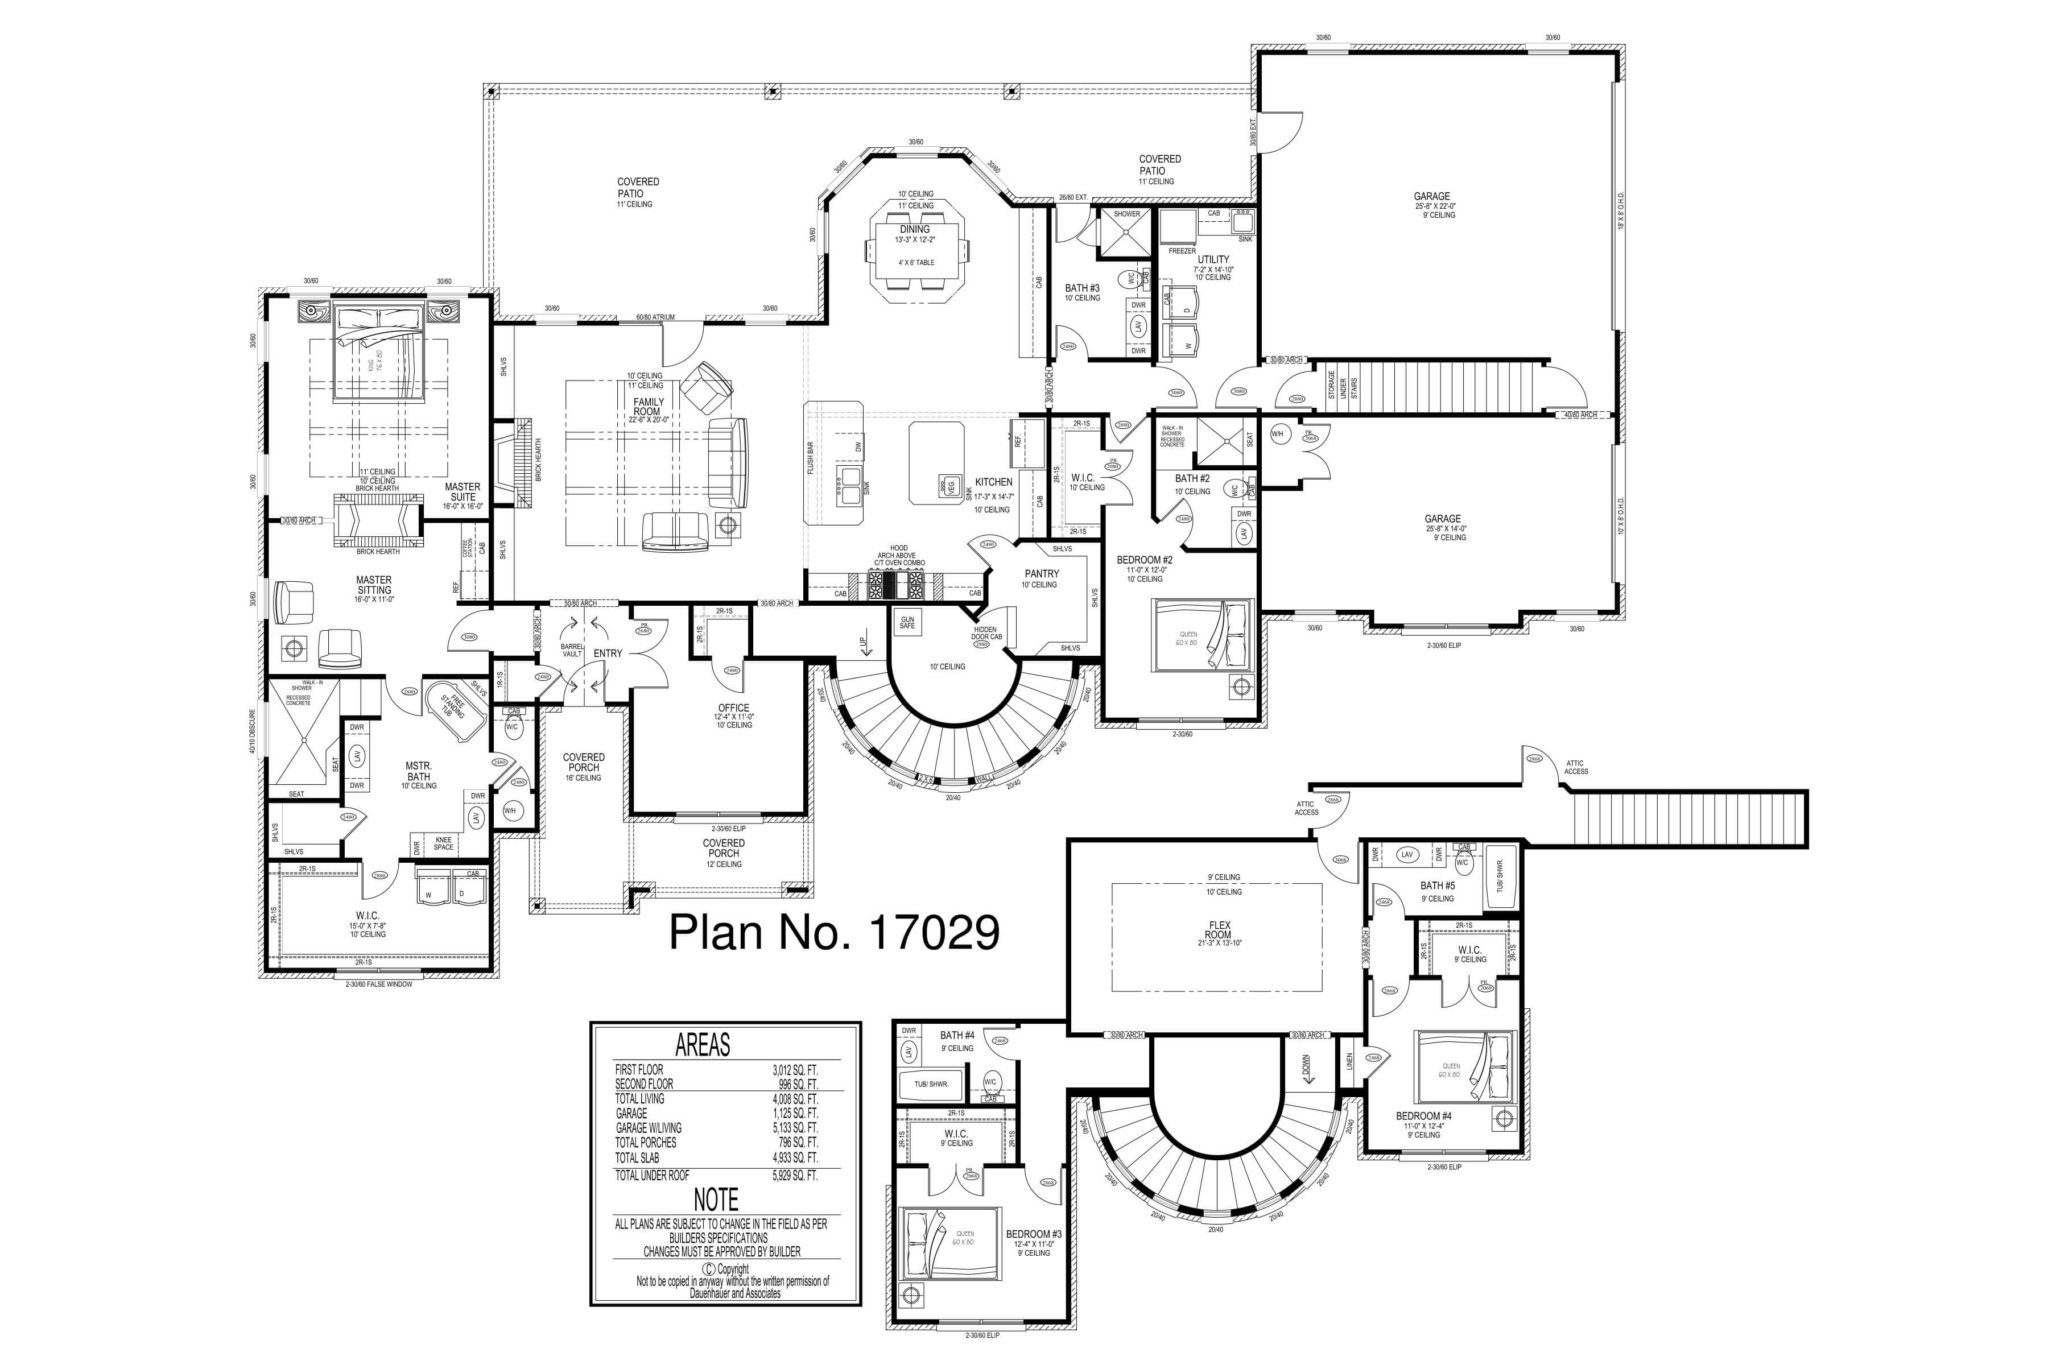 house-plan-p17029p-floor